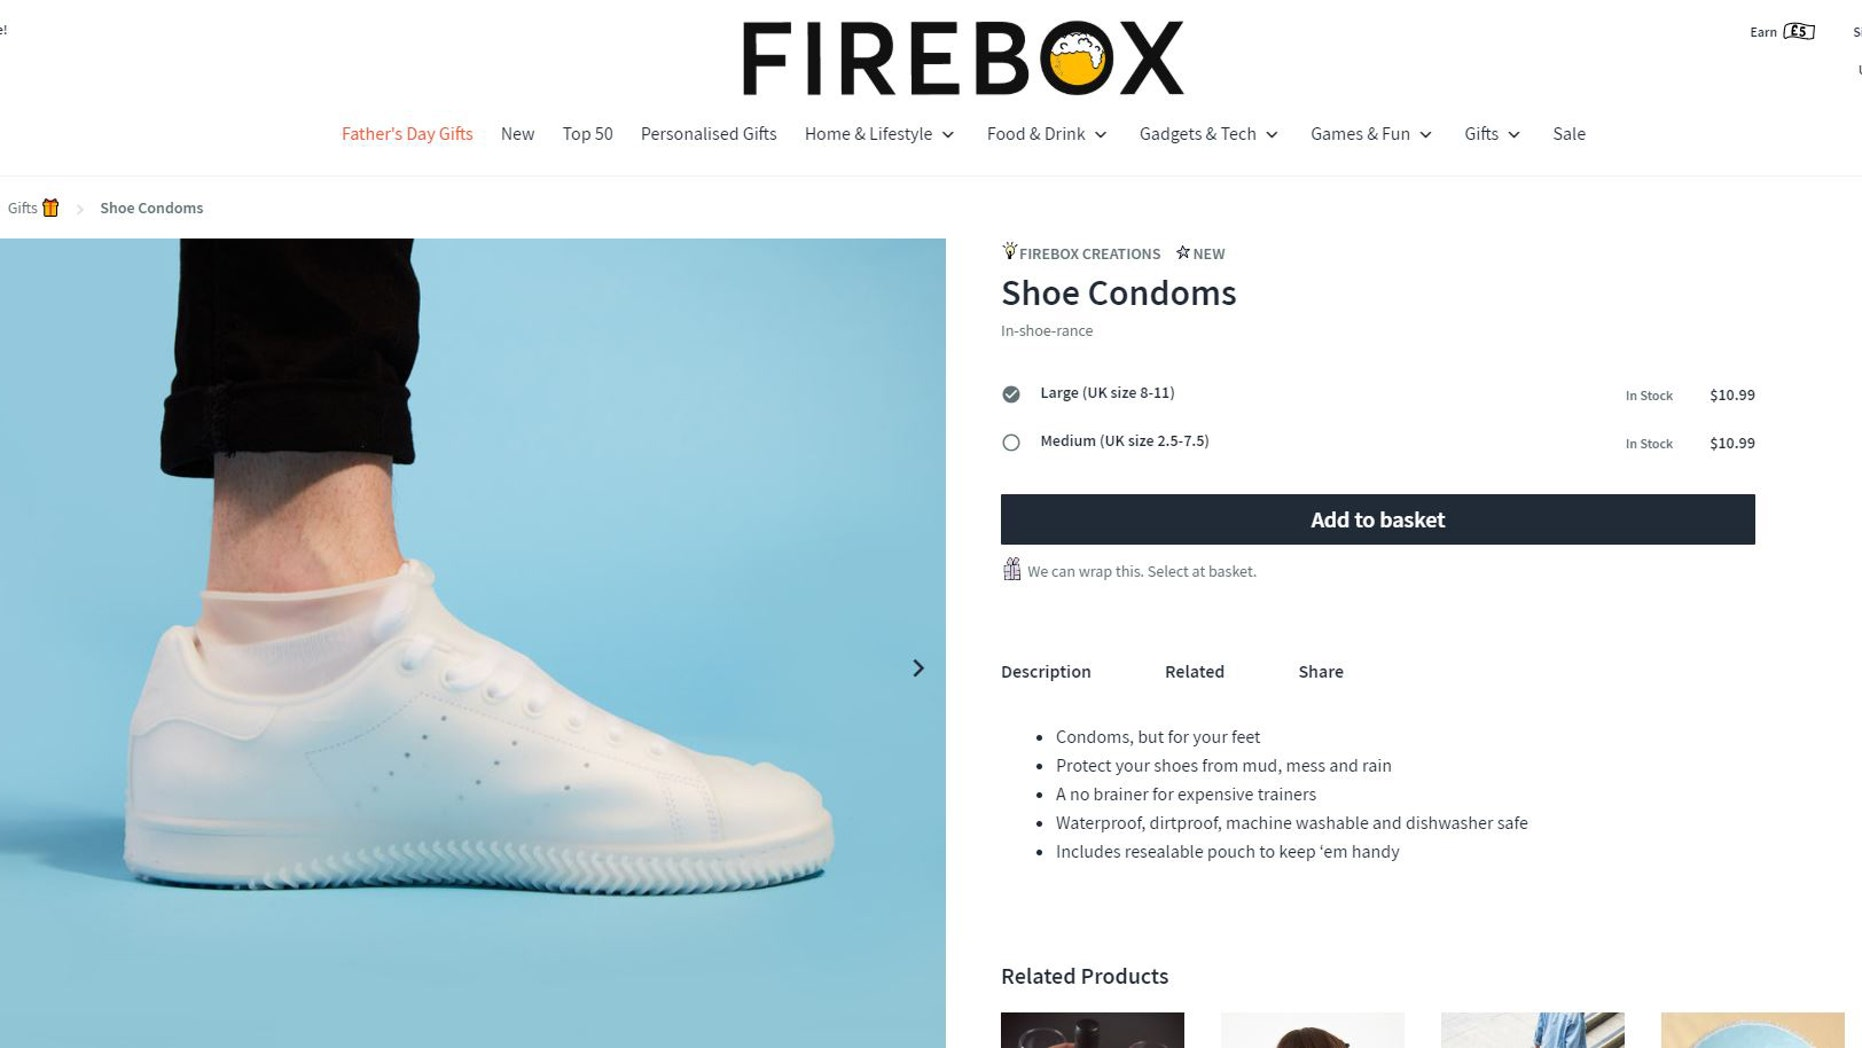 """Firebox, a UK e-tailer that sells """"unusual gifts for people with imagination,"""" is charity them adult in sizes middle and vast for an affordable $10.99."""